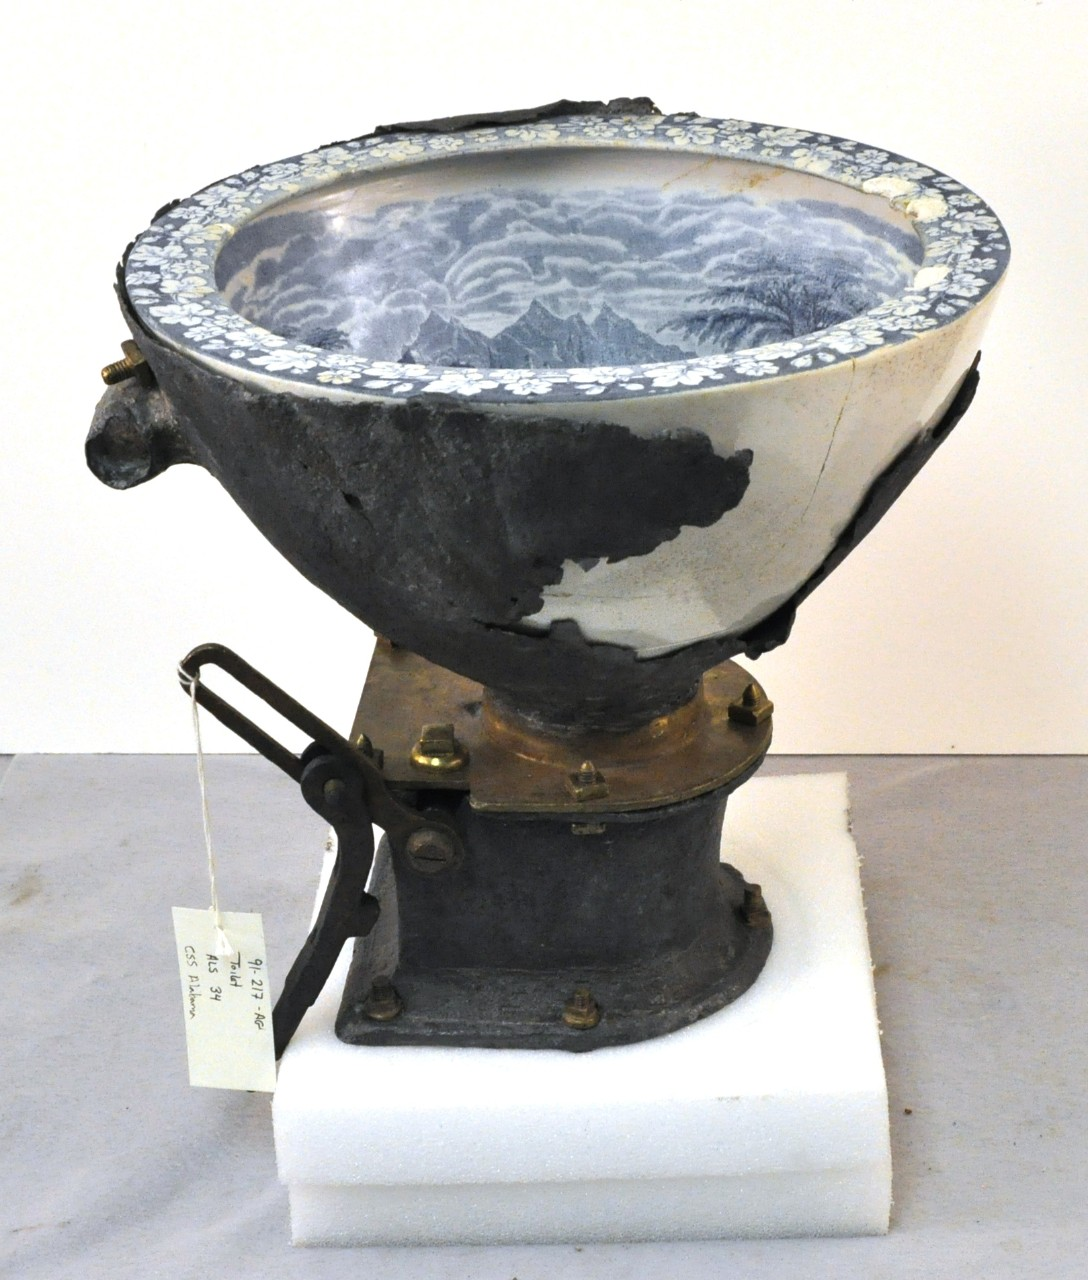 A flushing toilet recovered from CSS Alabama. A large porcelain bowl decorated with boating and country scenes set in a lead base that tapers down onto a large square brass washer.  A circular hole is made at the bottom of the bowl where a round brass door swings open and shut. Connected to the brass washer is brass handle which would allow you to operate the brass door.  The brass washer is screwed into another square lead piece below it and abruptly tapers to a circular lead piece.